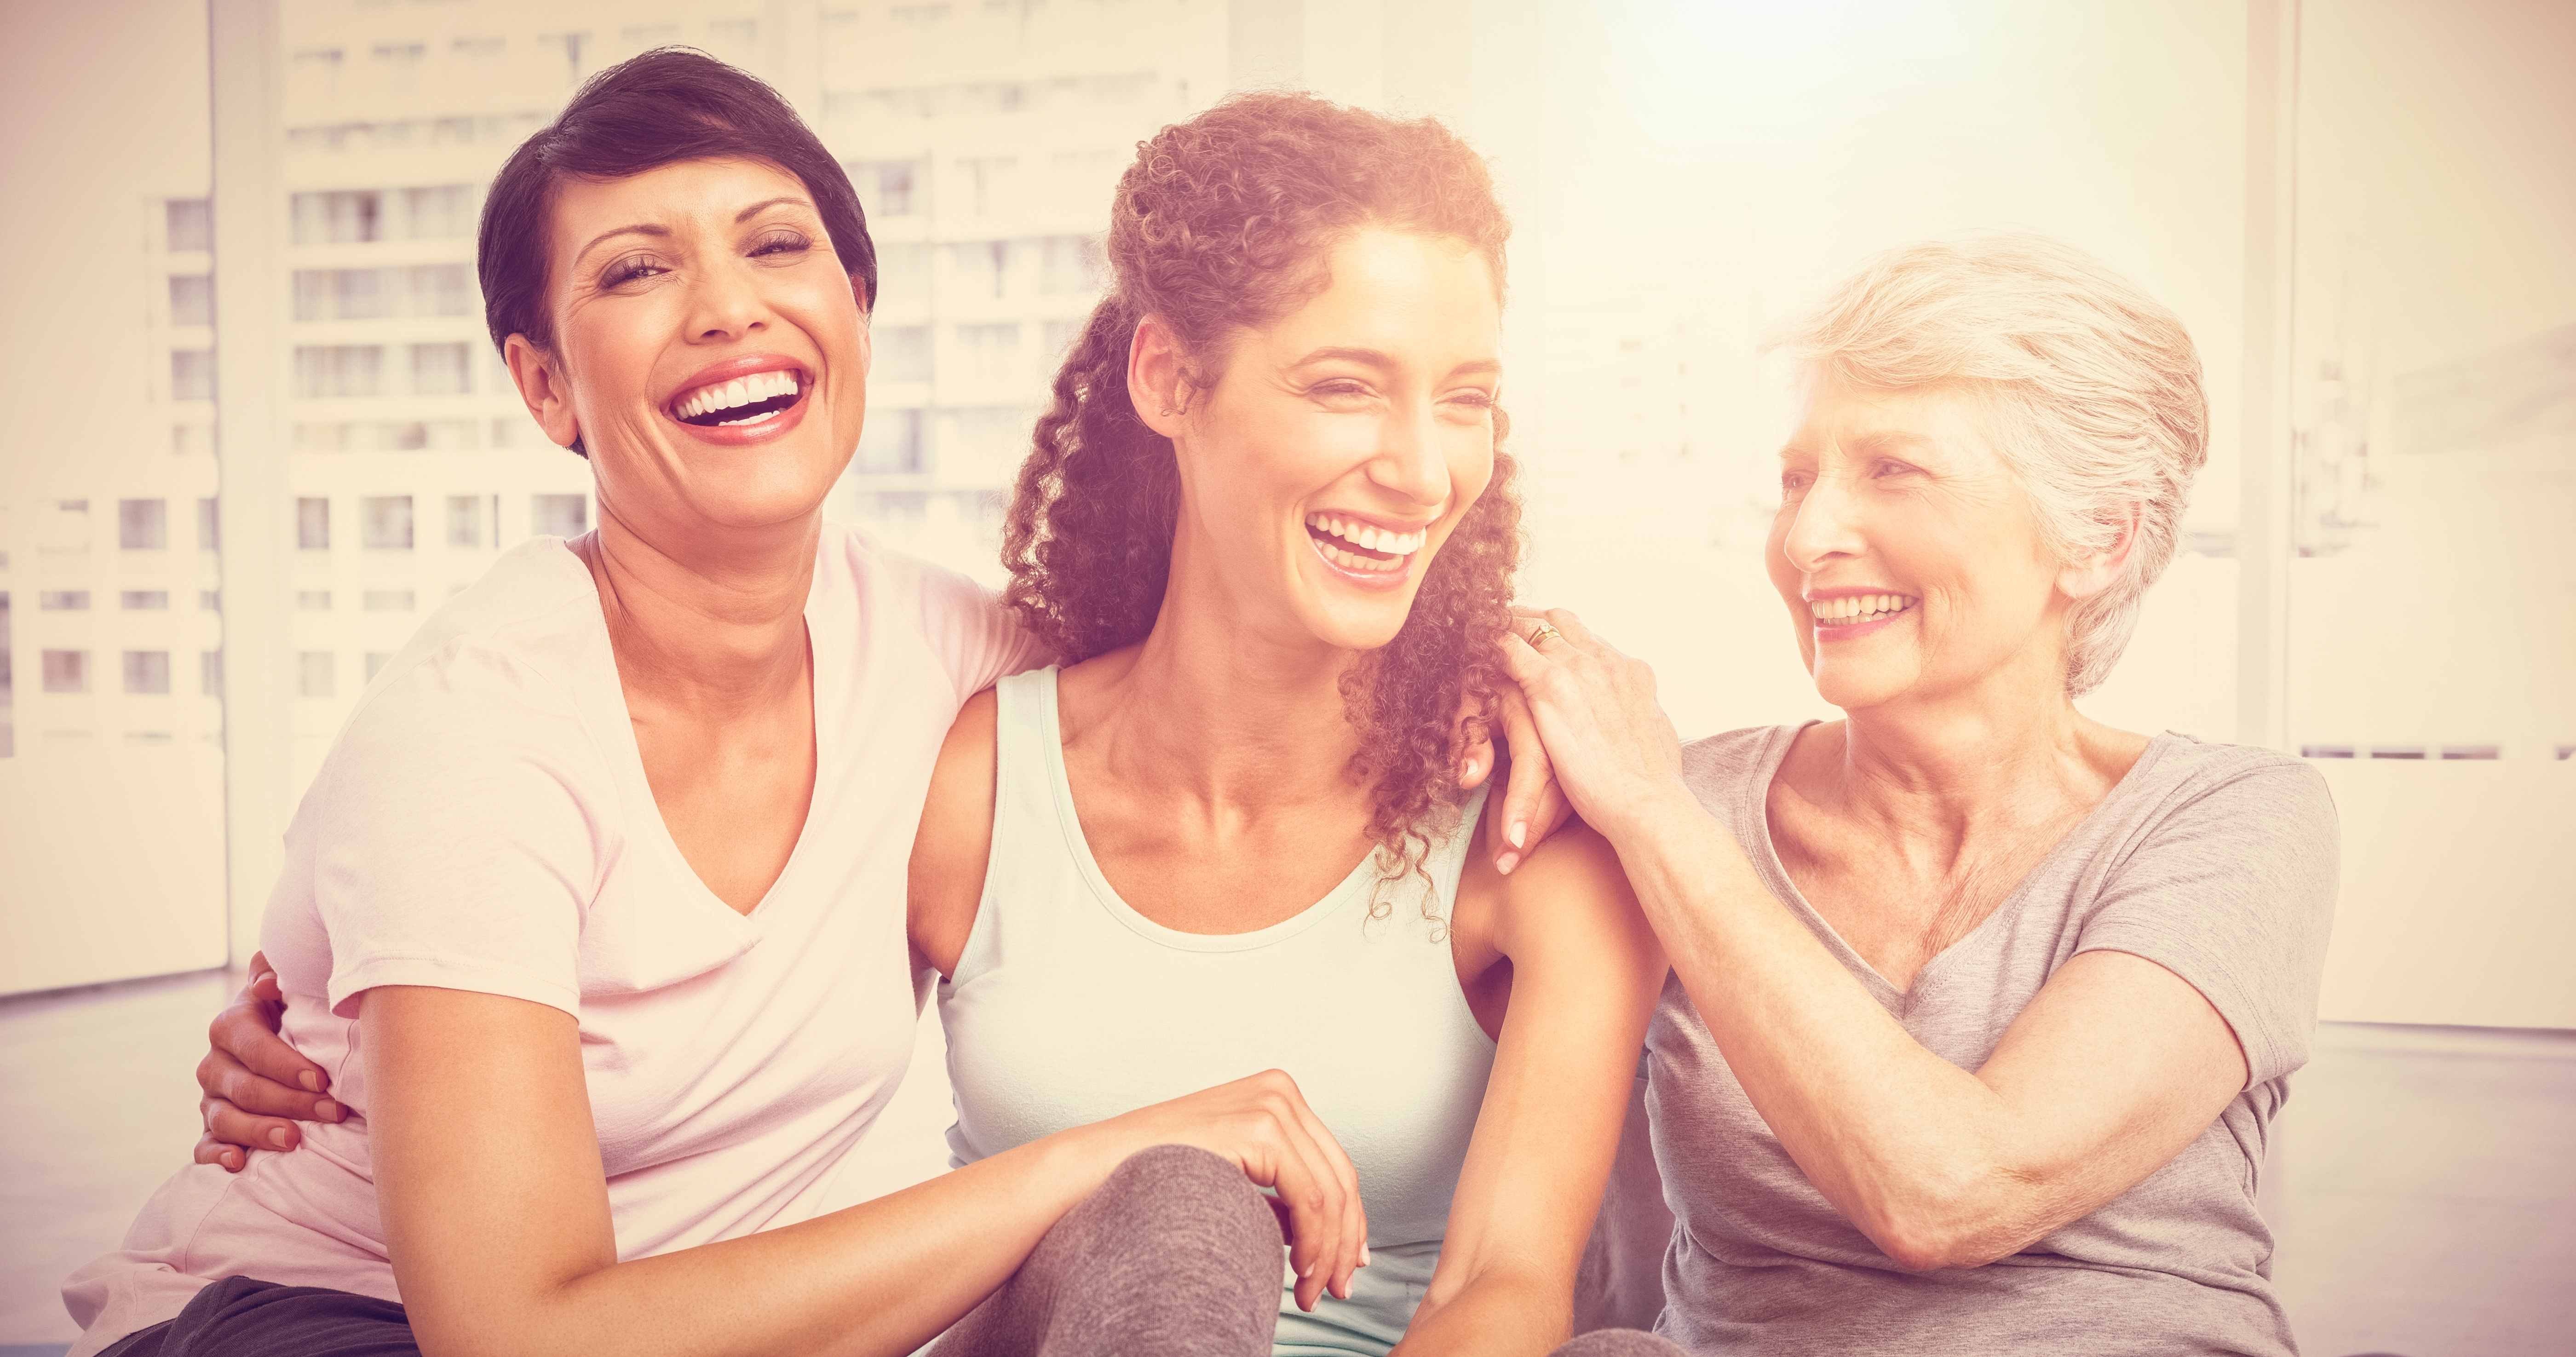 Three women hugging and laughing